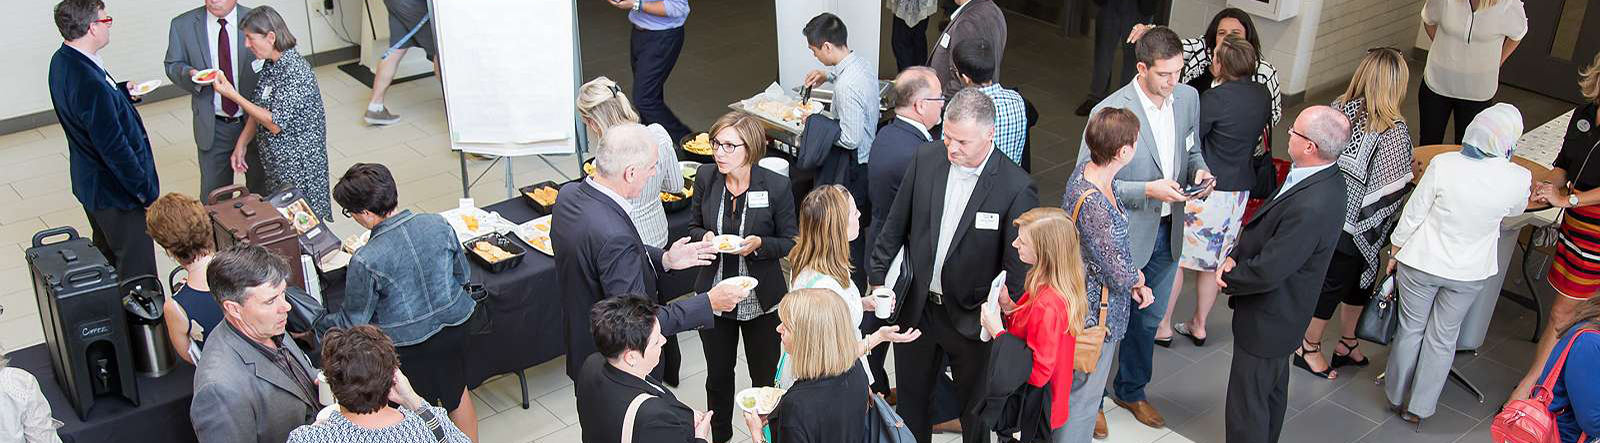 Business After 5 Greater KW Chamber of Commerce Kitchener Waterloo Chamber of Commerce Ontario Networking Professionals Professional Network Event Events